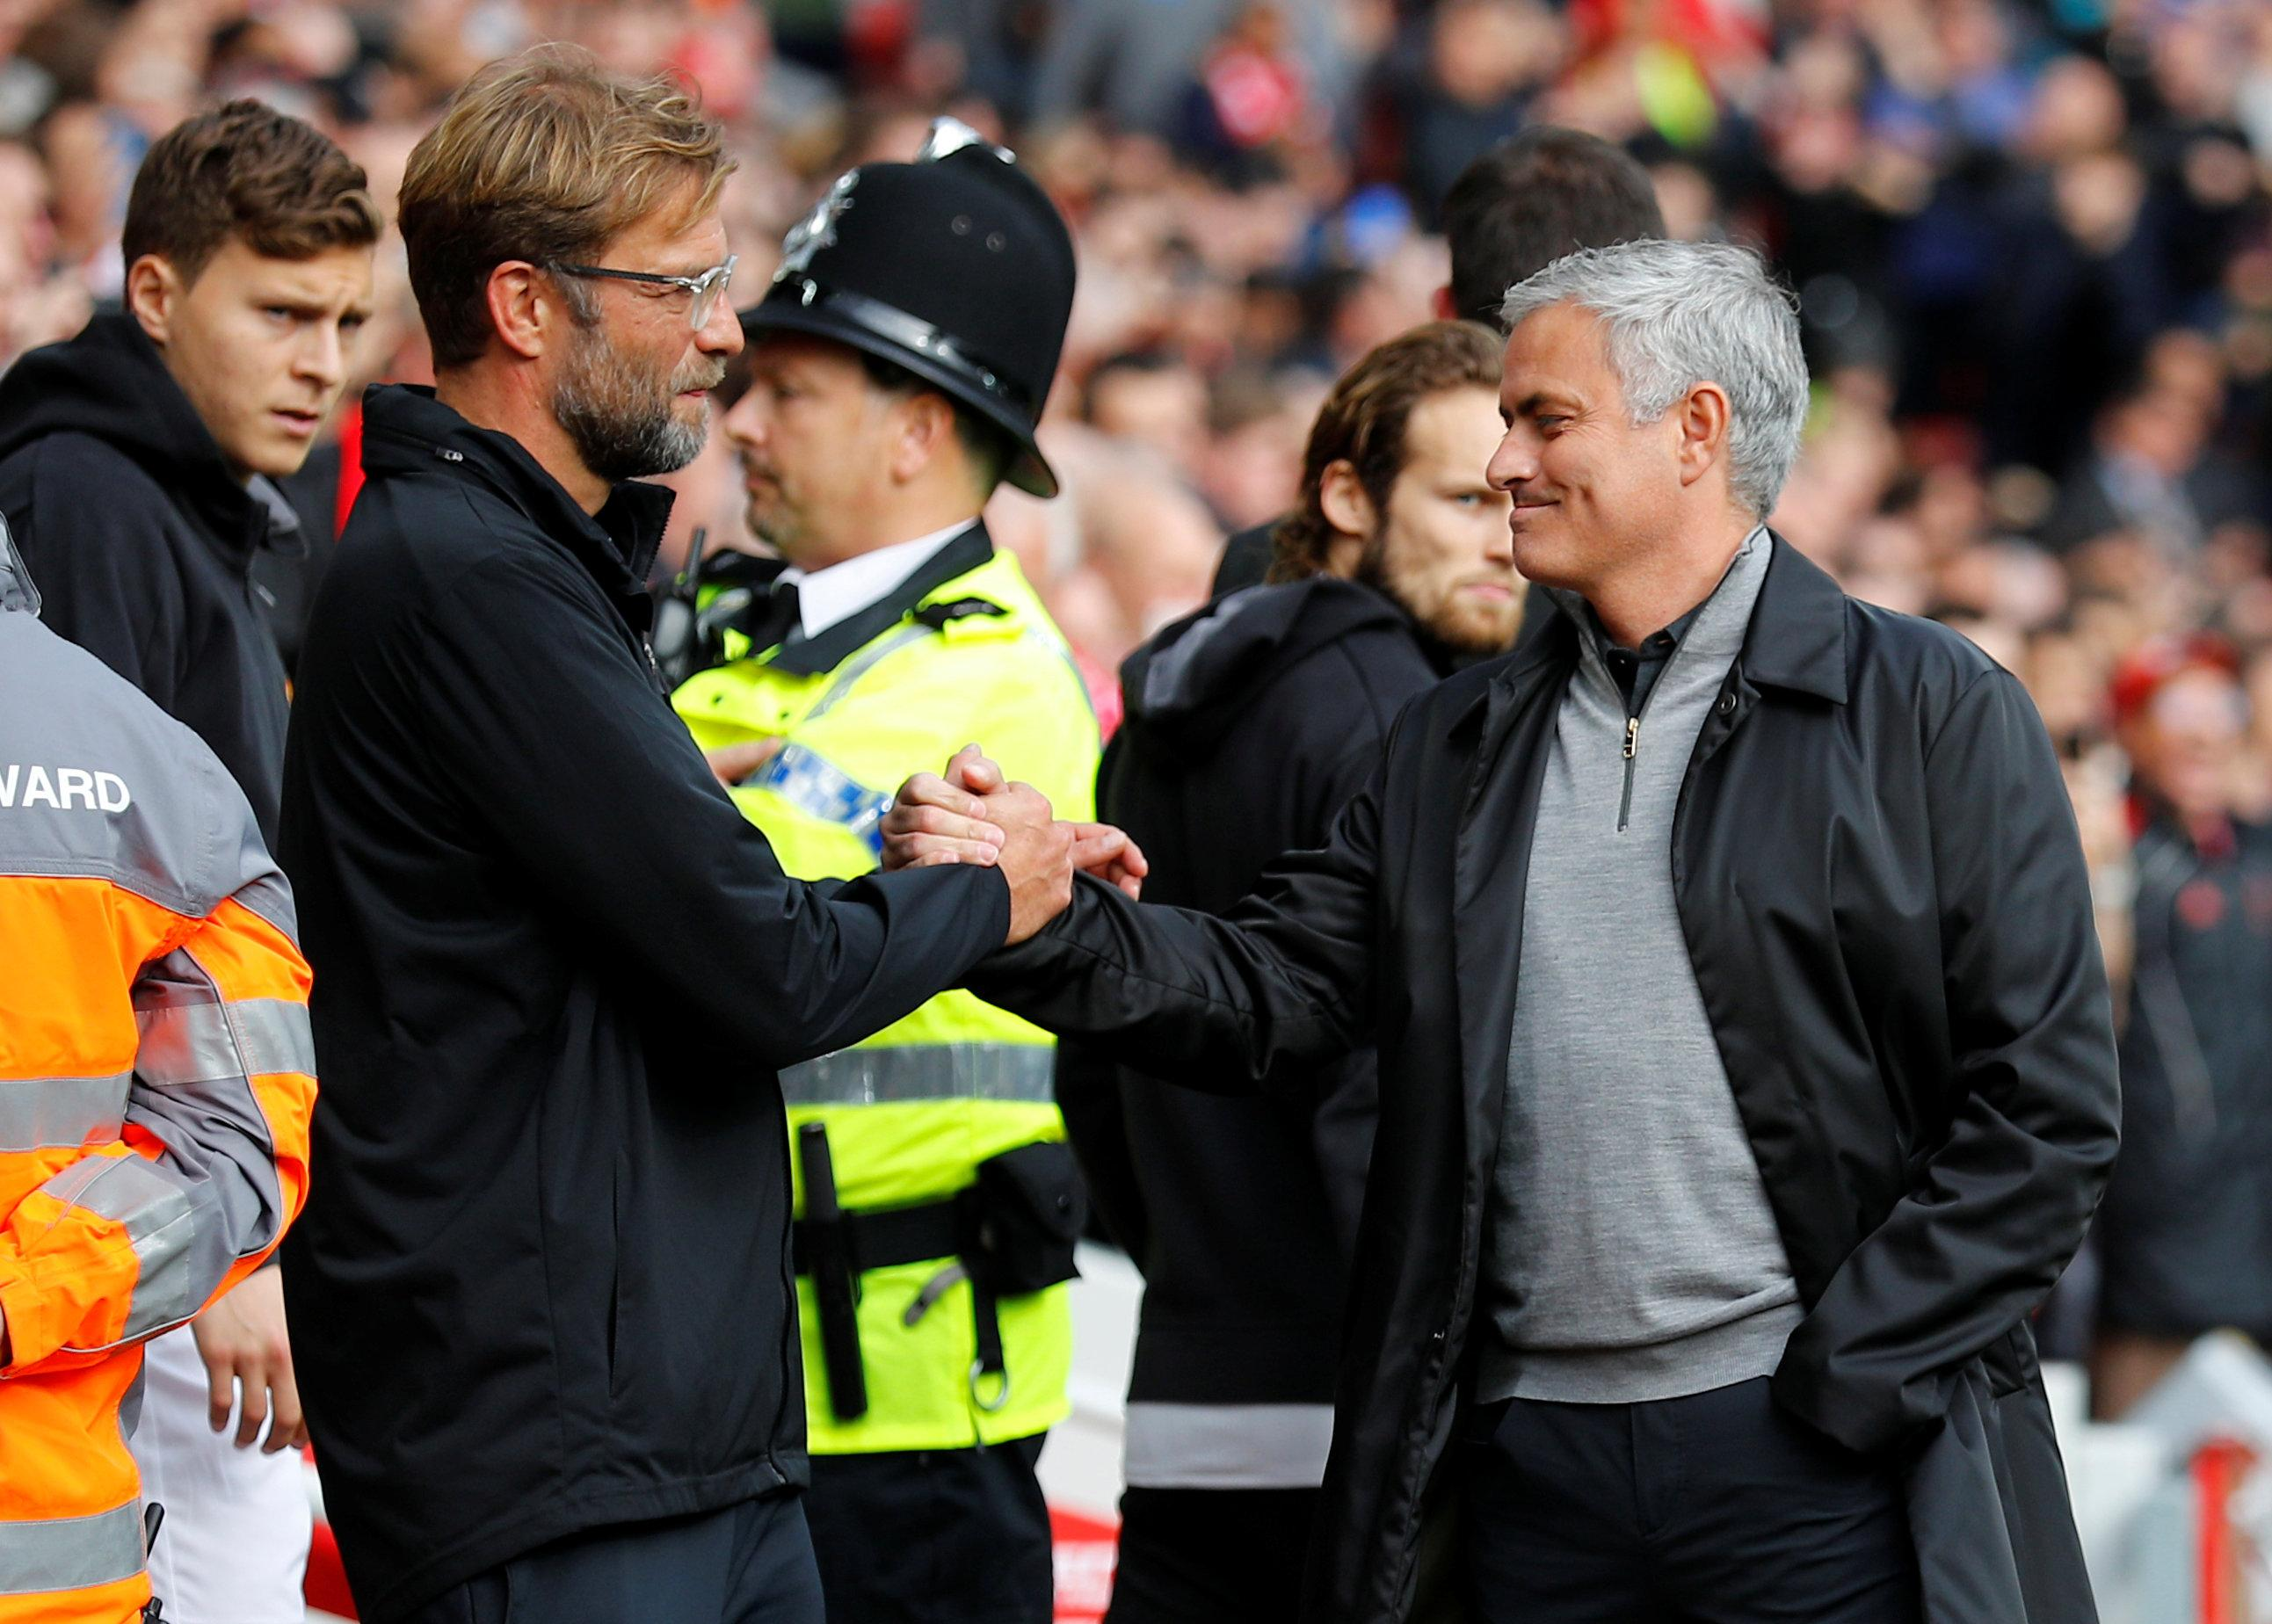 Klopp and Mourinho clashed for the first time this season at Anfield